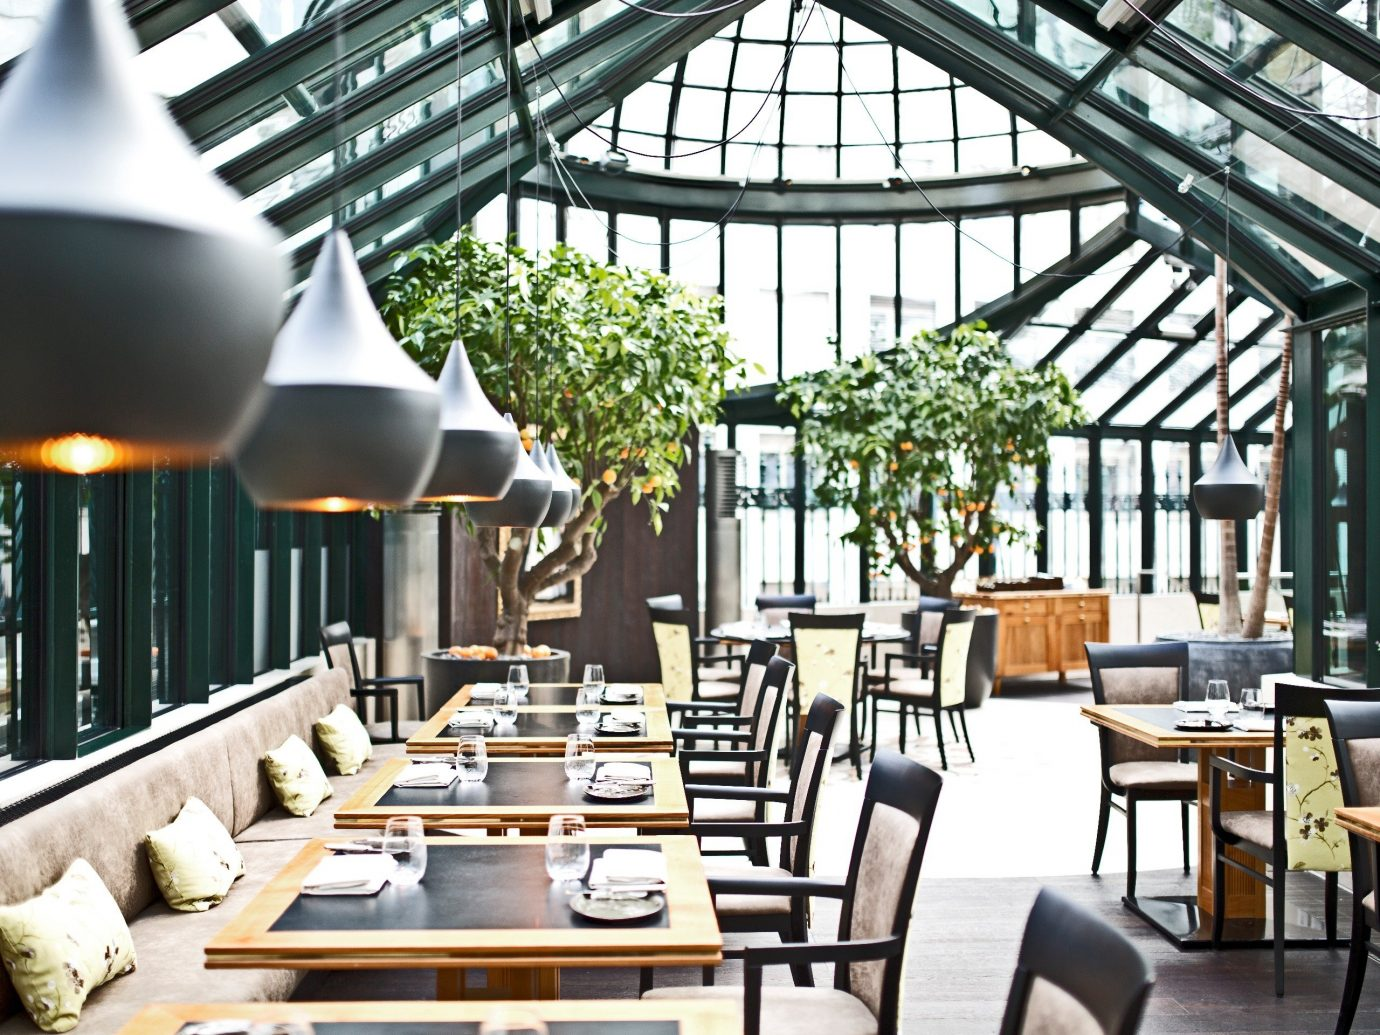 Austria europe Hotels Vienna restaurant interior design outdoor structure roof